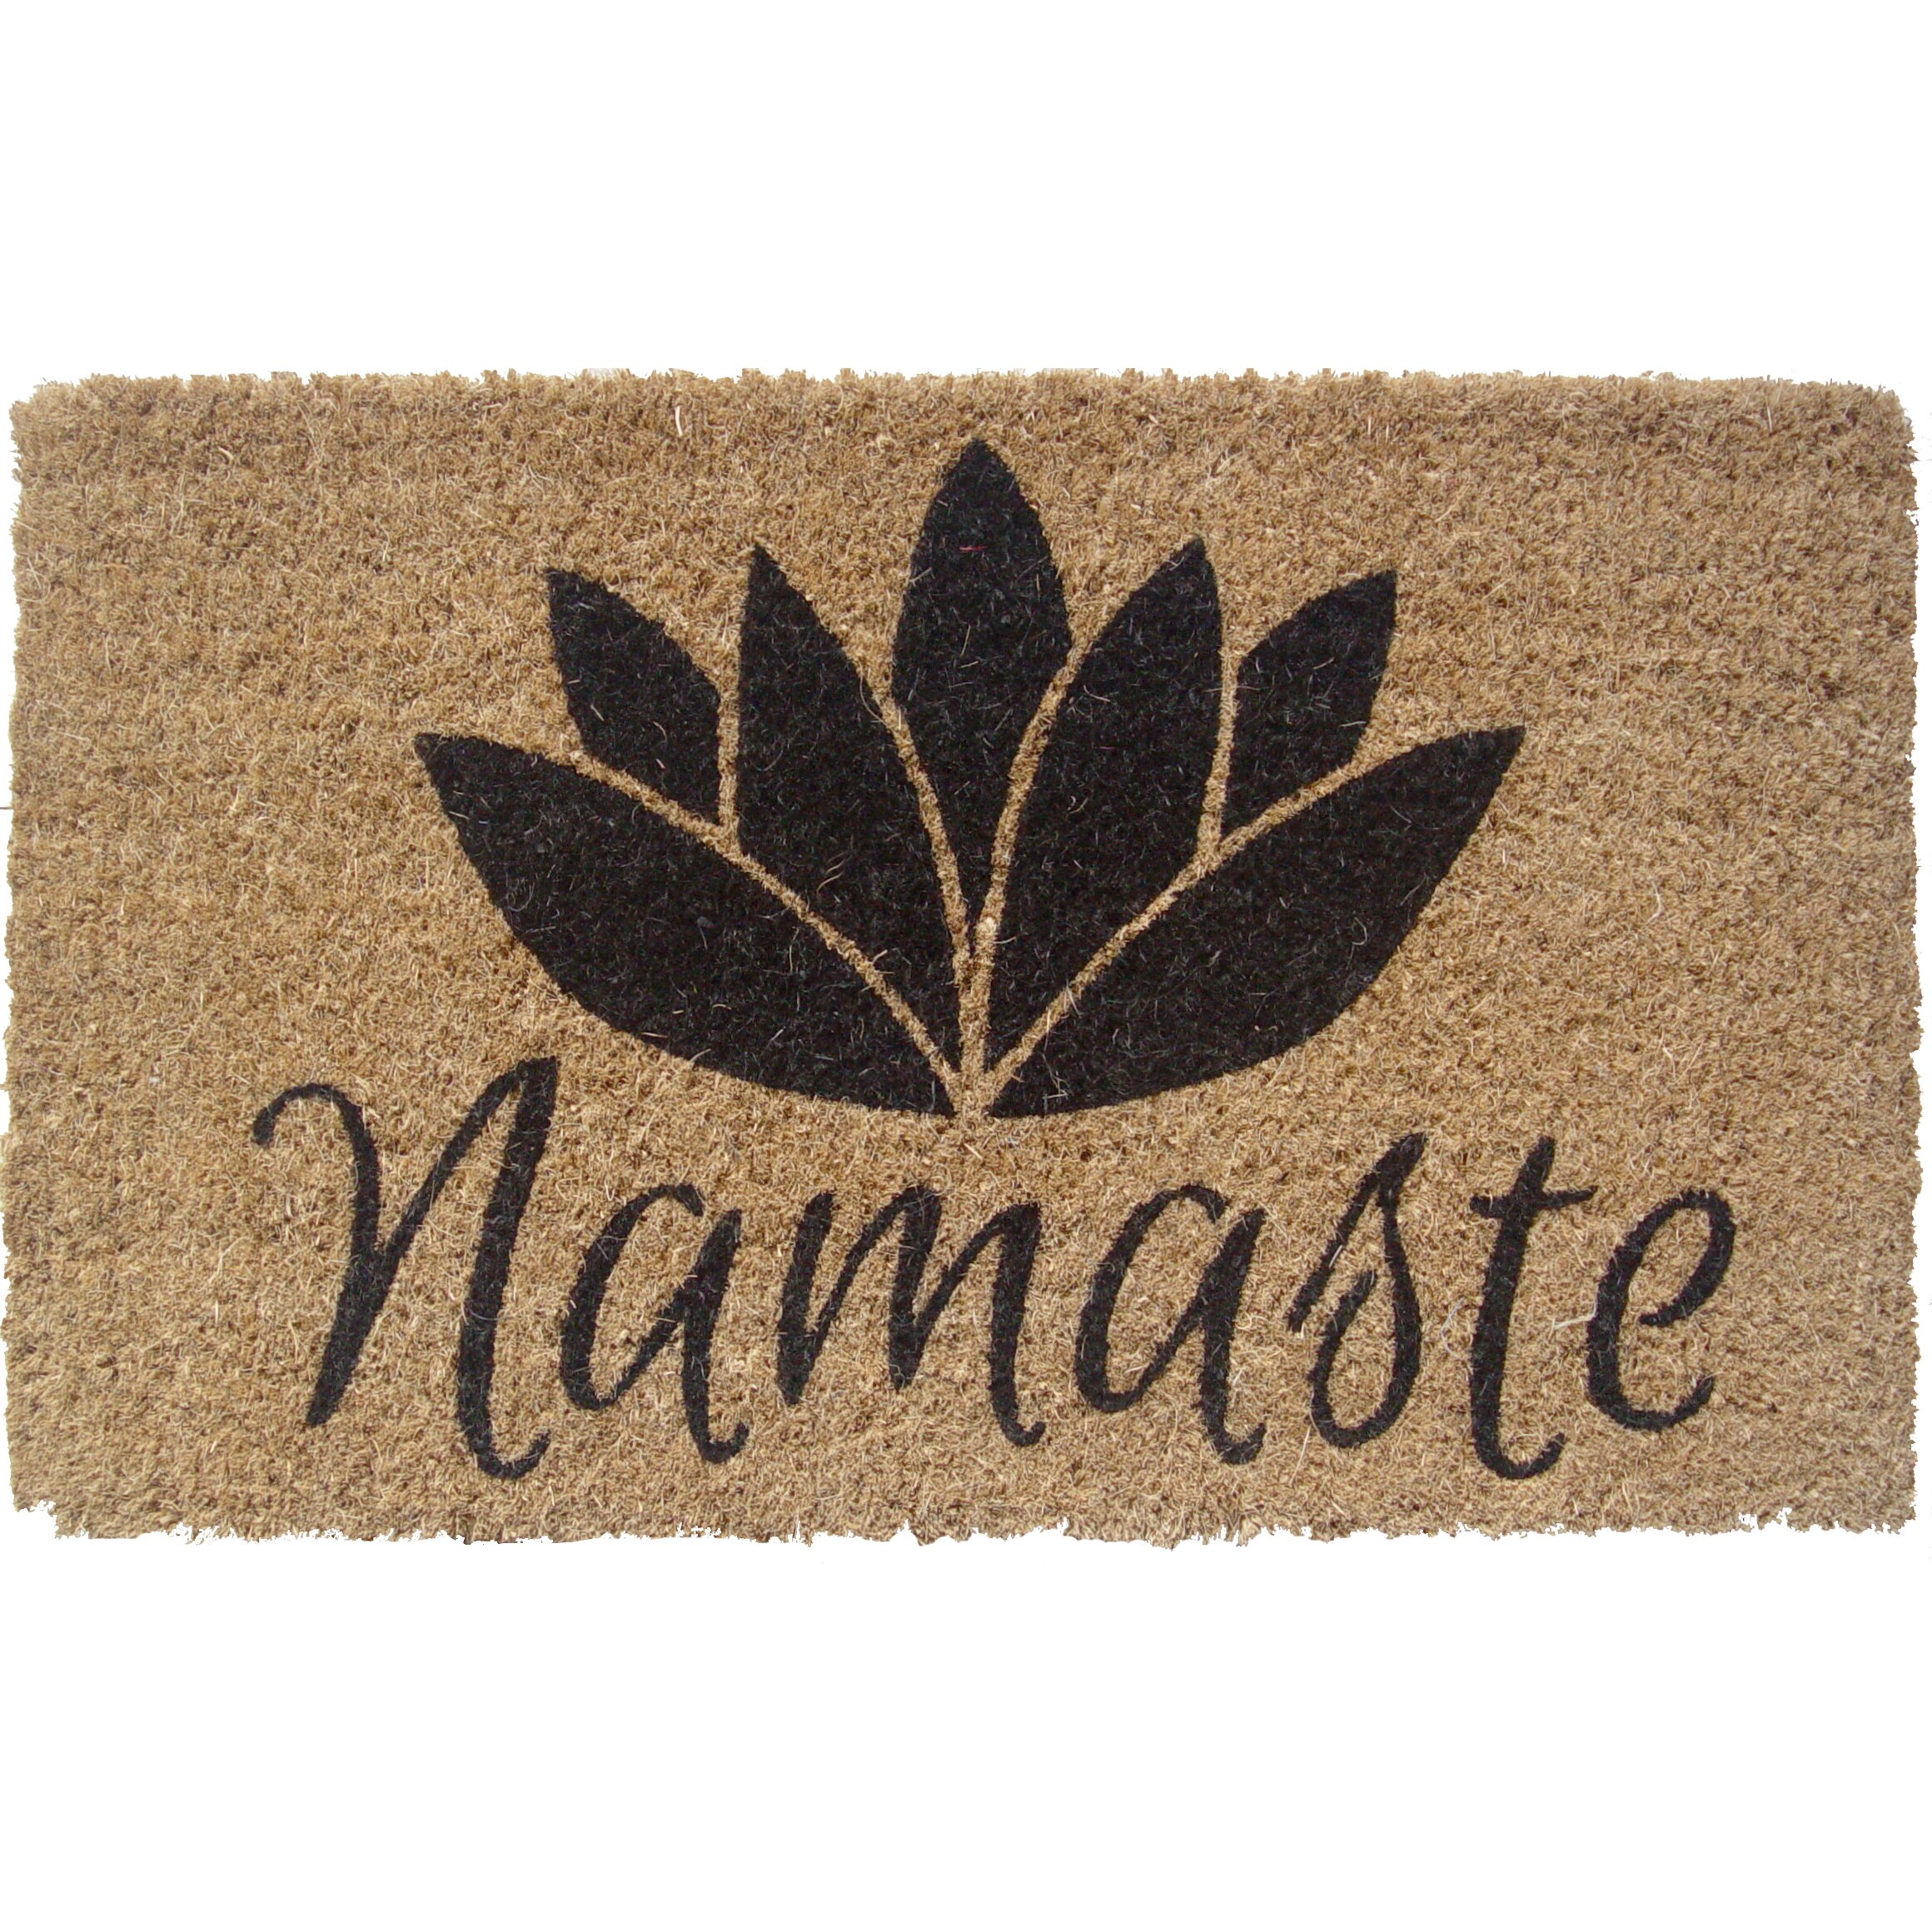 Entryways Namaste Doormat Amp Reviews Wayfair